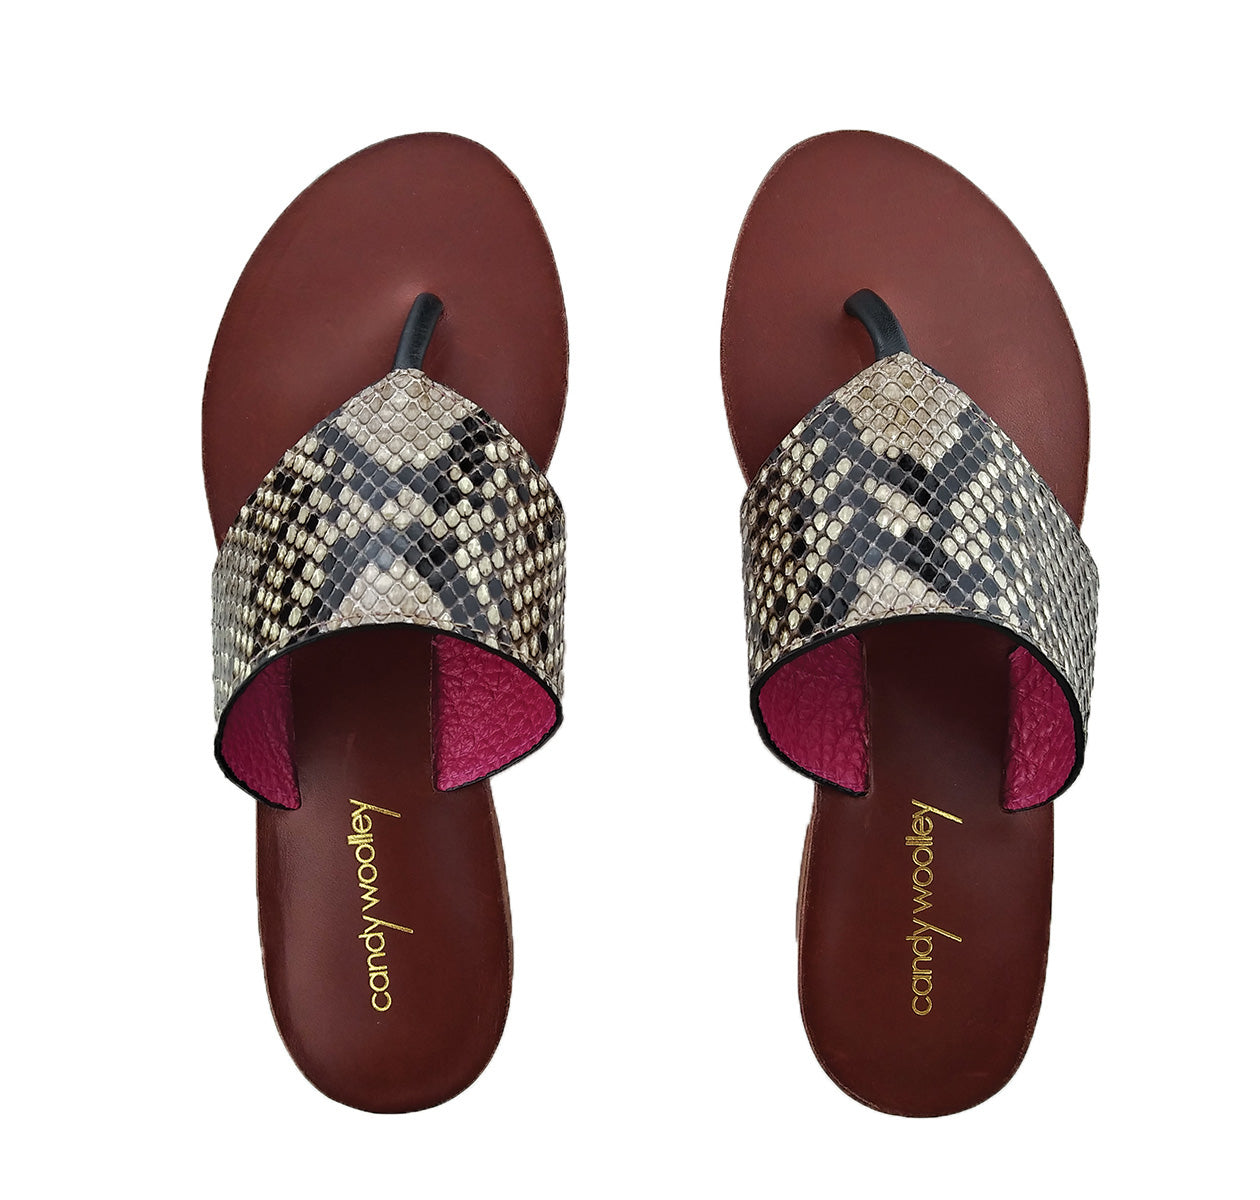 Genuine Python Flat Thong Sandals. Sizes Available 6-10